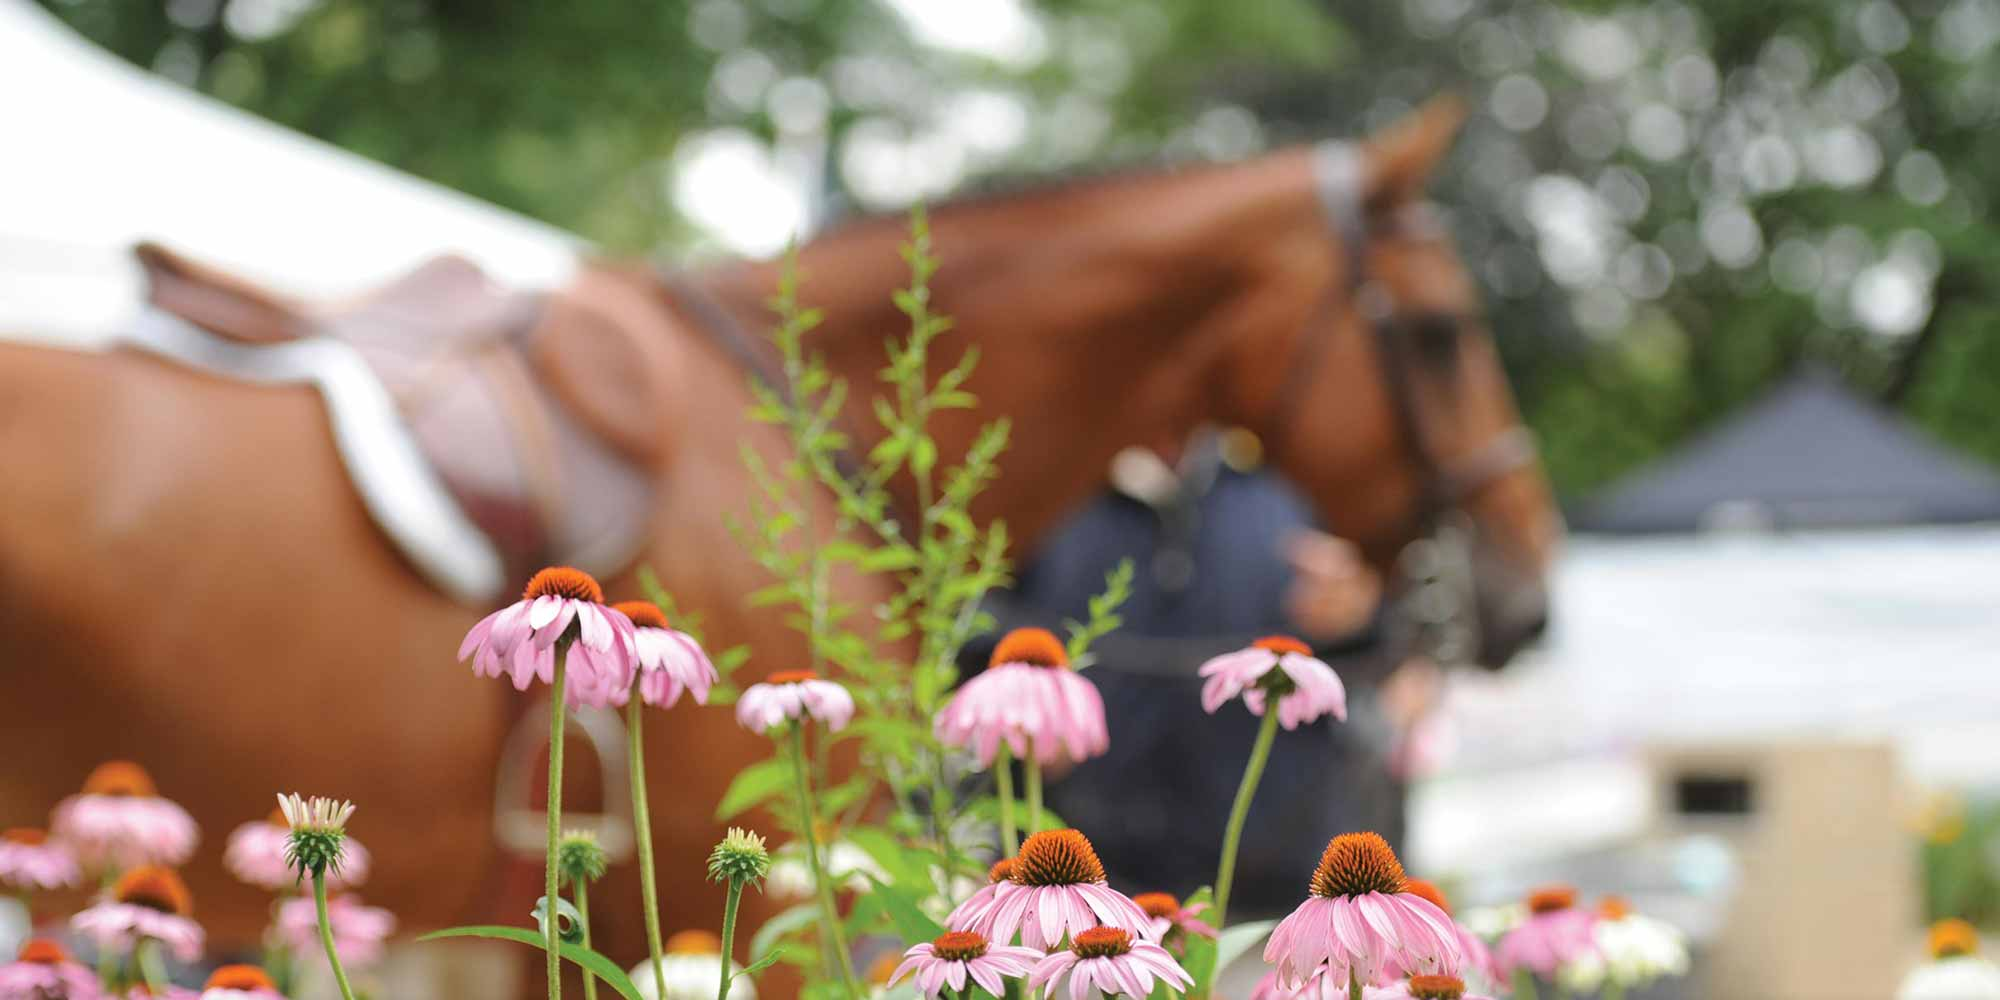 EQ Graphics | Horse Photography with Flowers at a Horse Show Grounds